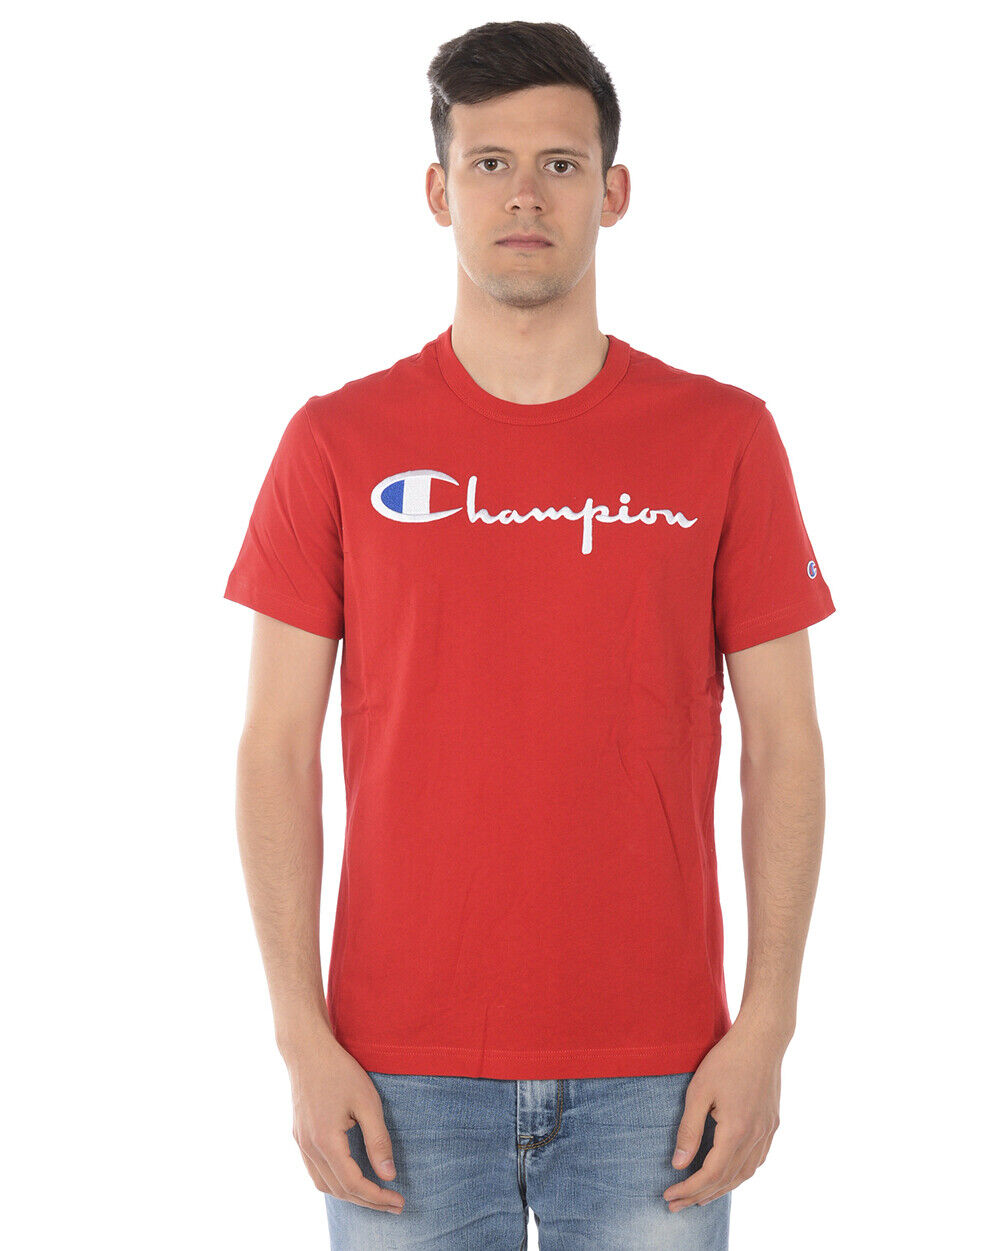 Champion T Shirt Sweatshirt Cotton Man rot 210972 RS053 Sz XXL MAKE OFFER